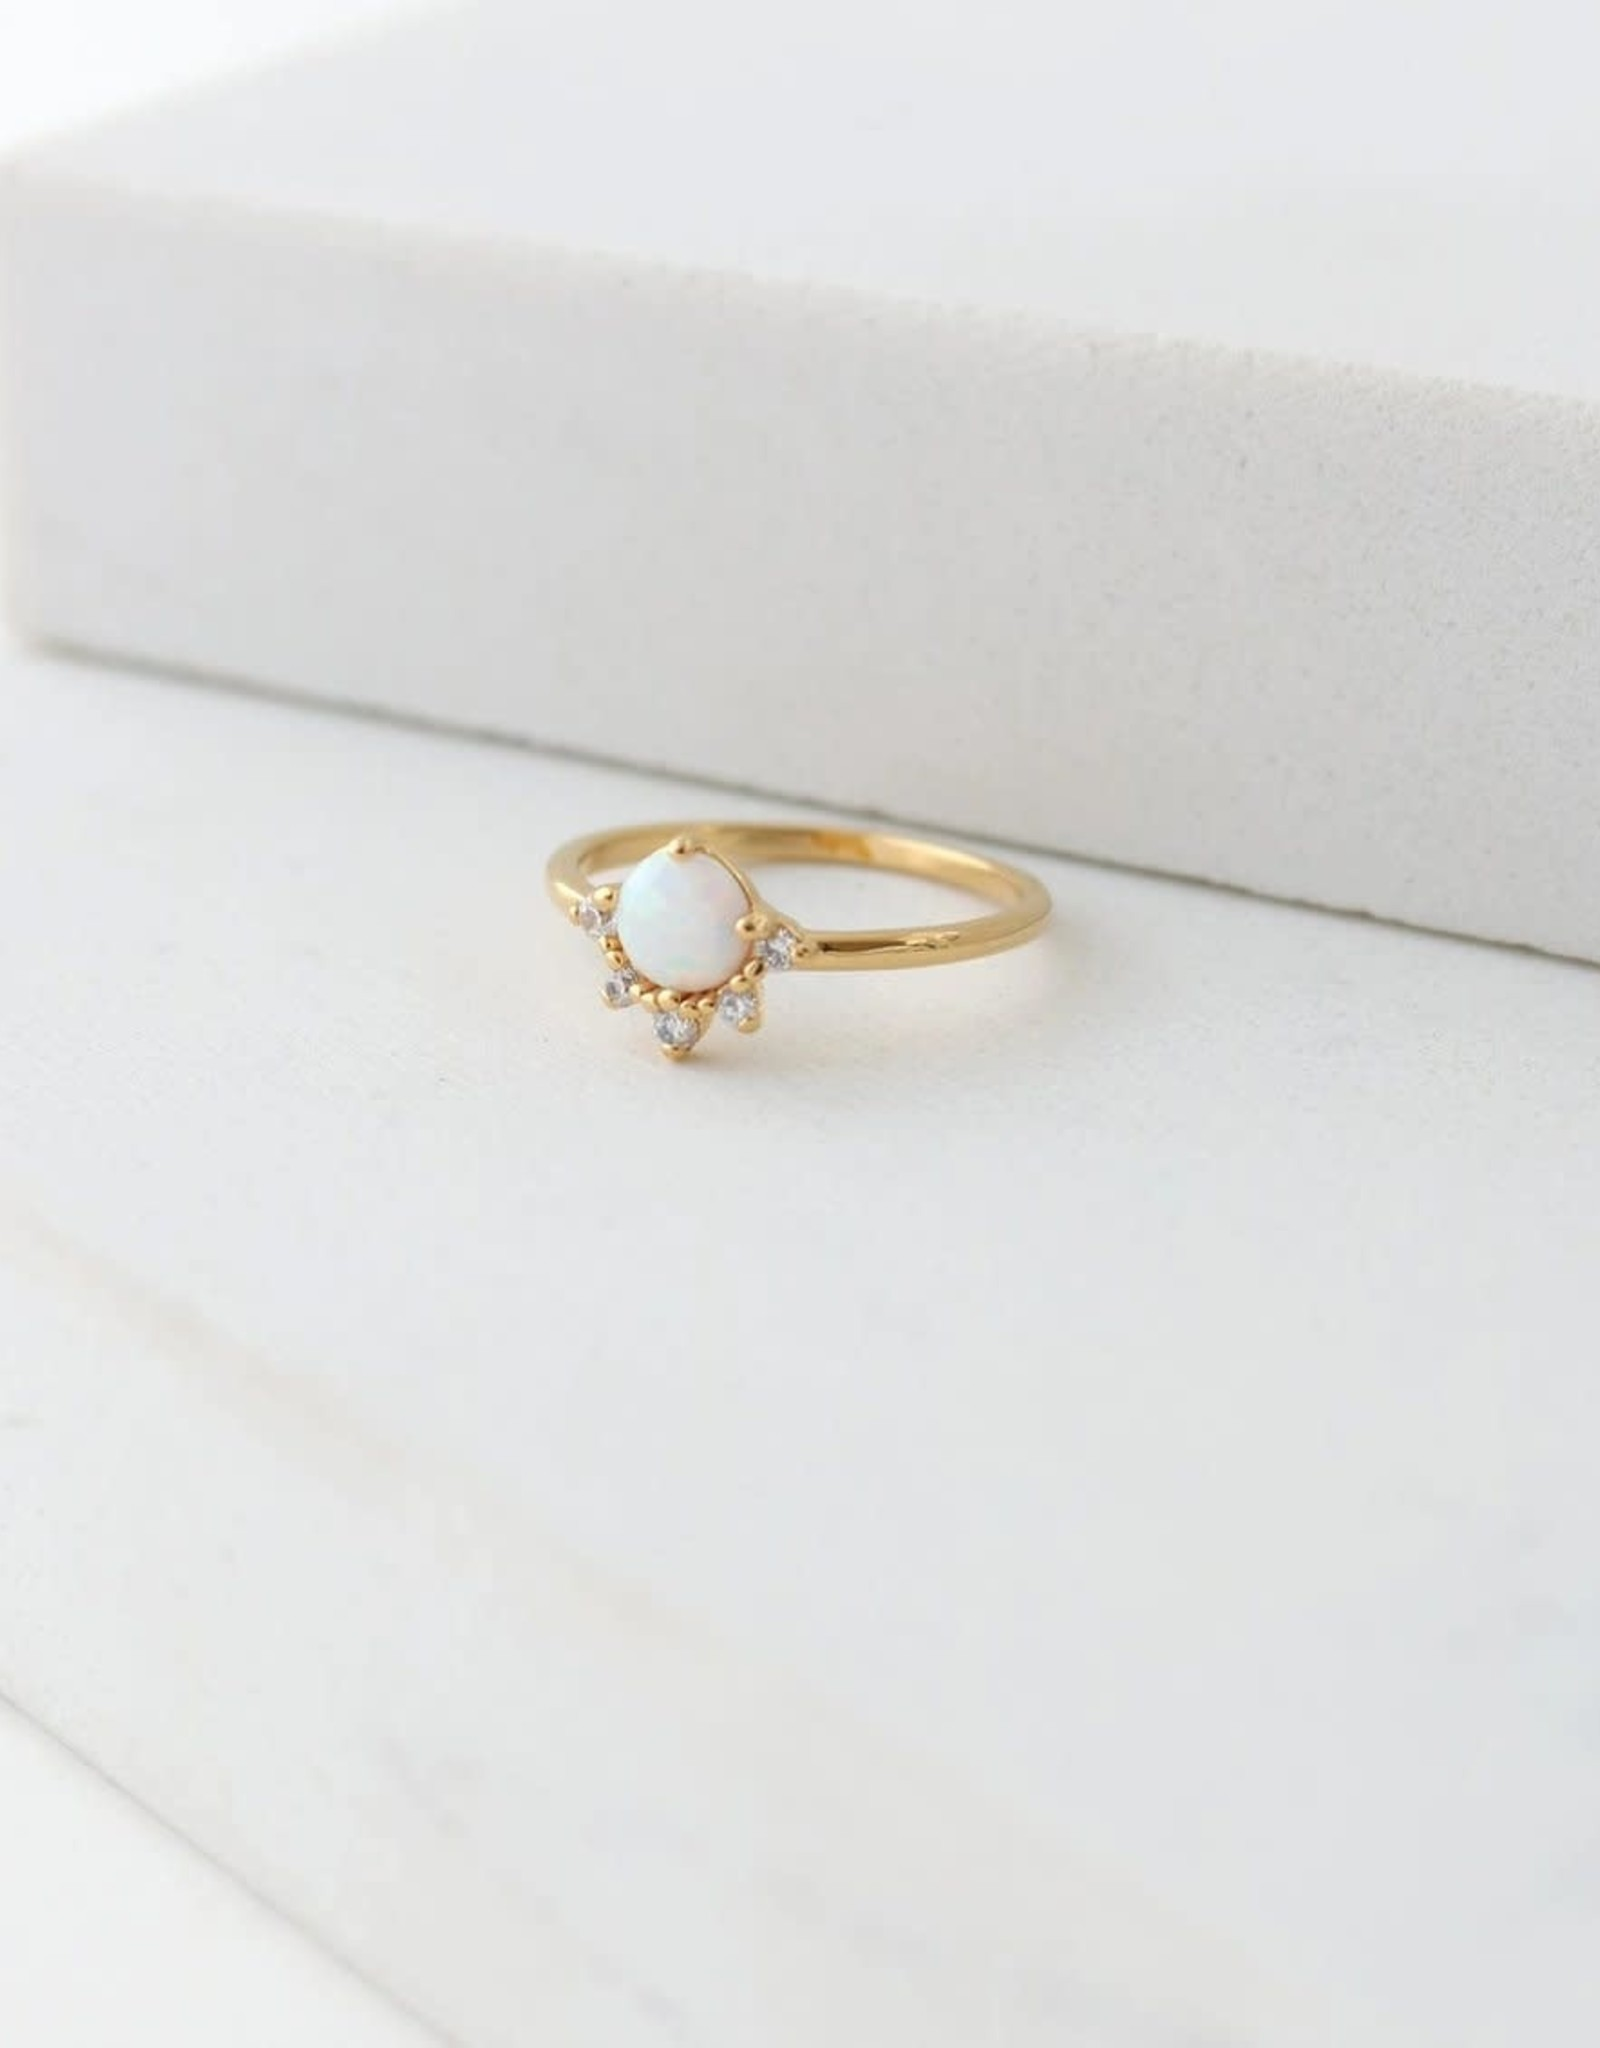 Lover's tempo Bague - Juno or opale blanche taille 7